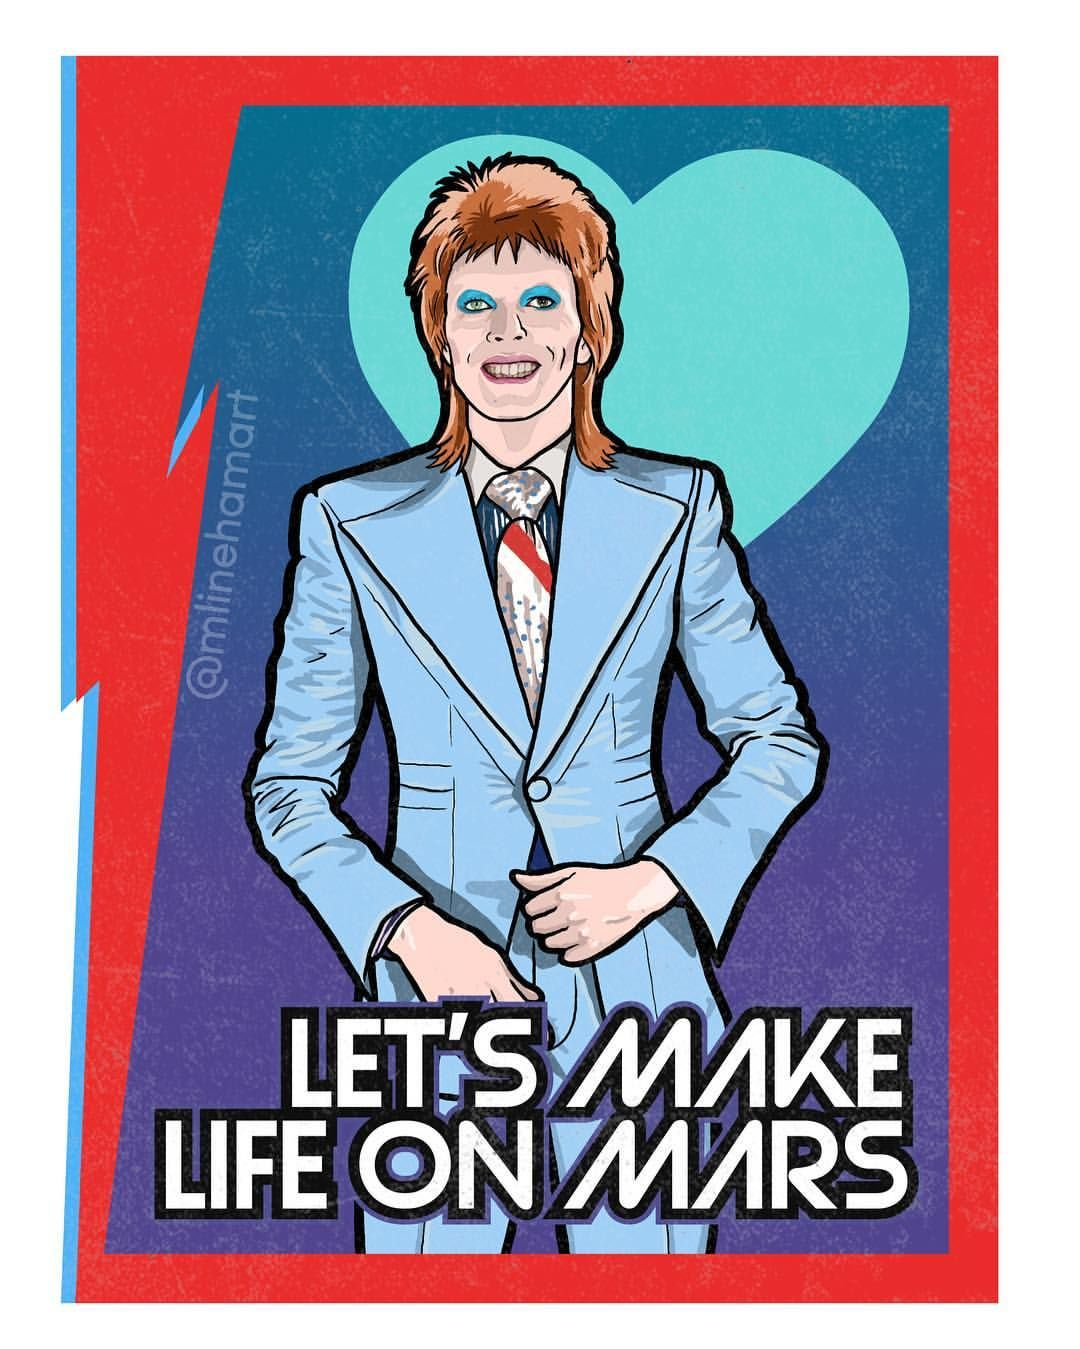 David Bowie Valentines 1 9 By Matthew Lineham Are Available At Mlinehamart Com David Bowie Bowie David Bowie Art